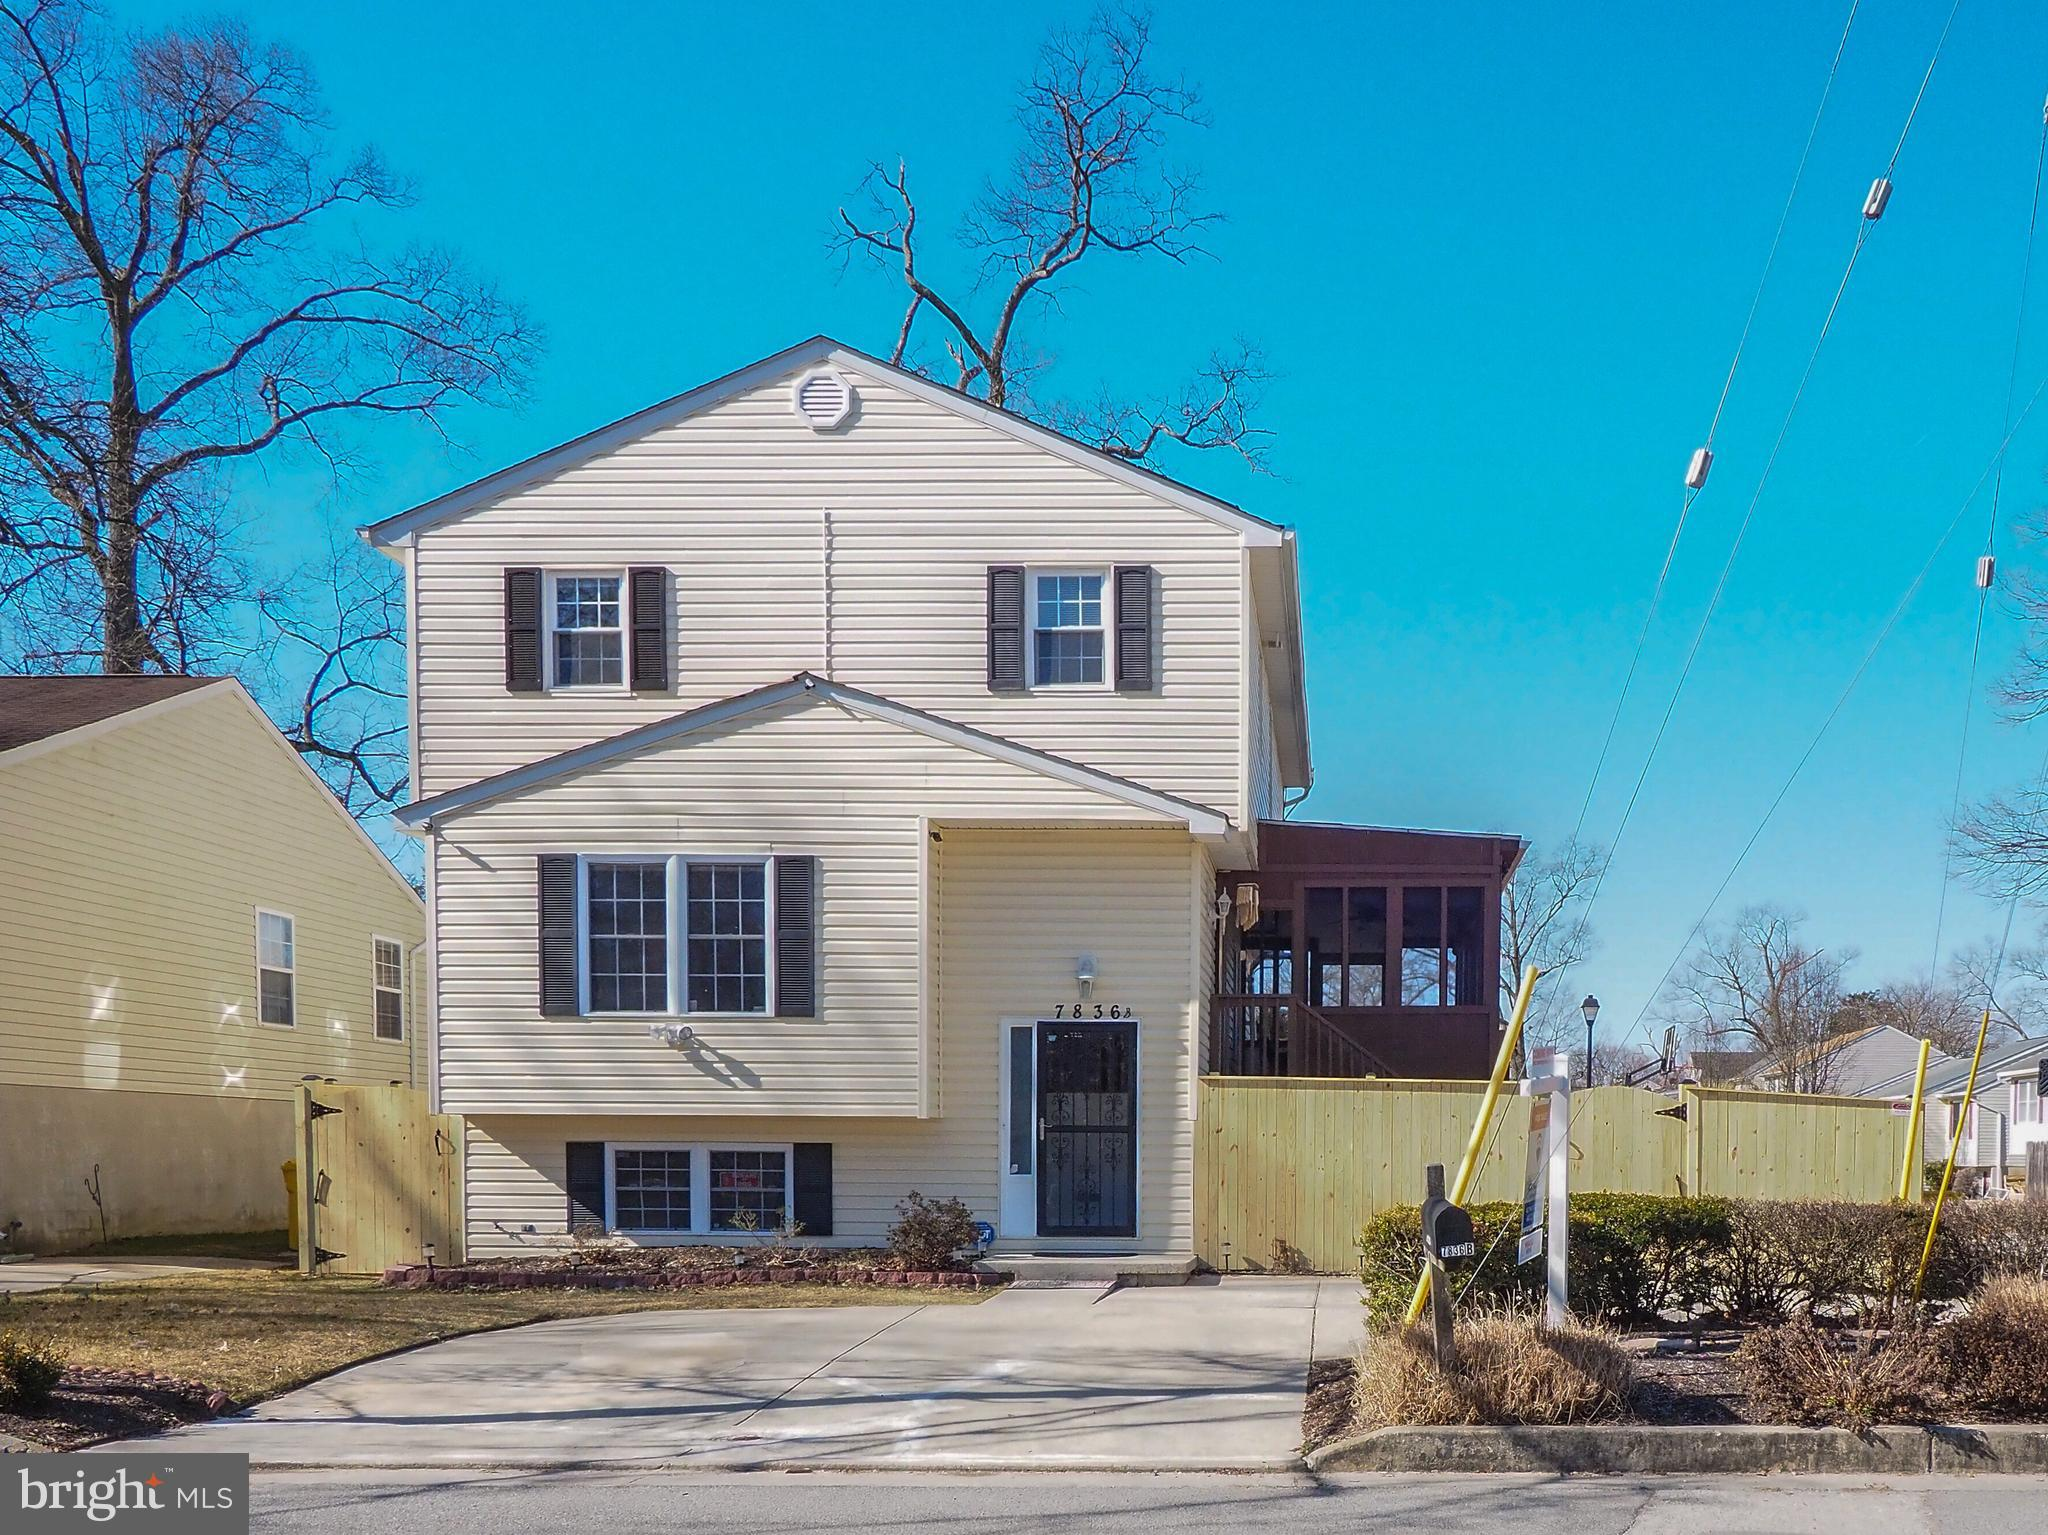 Don't let this 2 story home get away;   Excellent well cared for single family home with recent 3rd